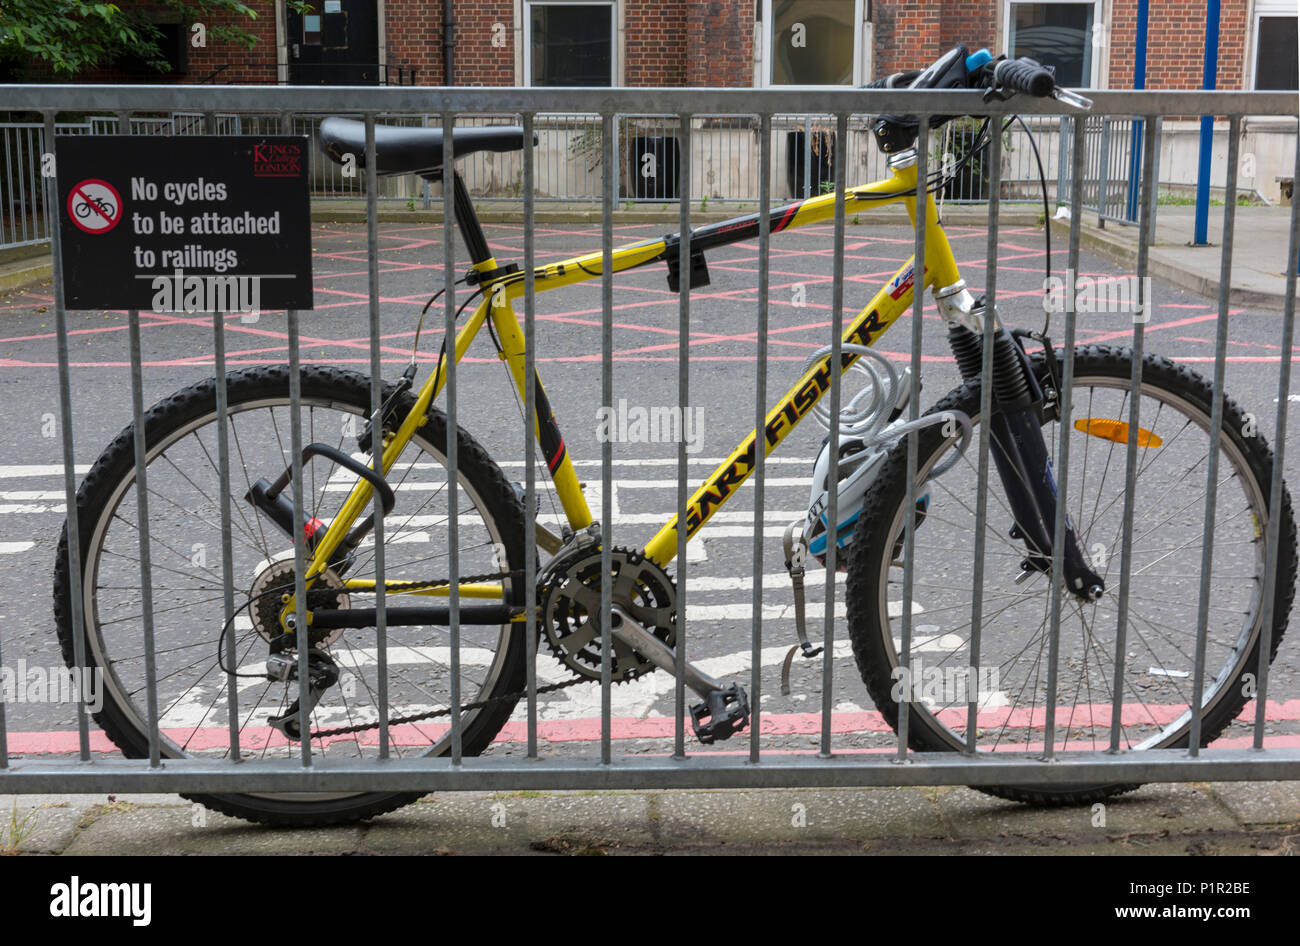 no cycles to be chained to these railings funny. a bicycle clearly flouting the law and making a mockery of the sign prohibiting parking of bicycles. - Stock Image